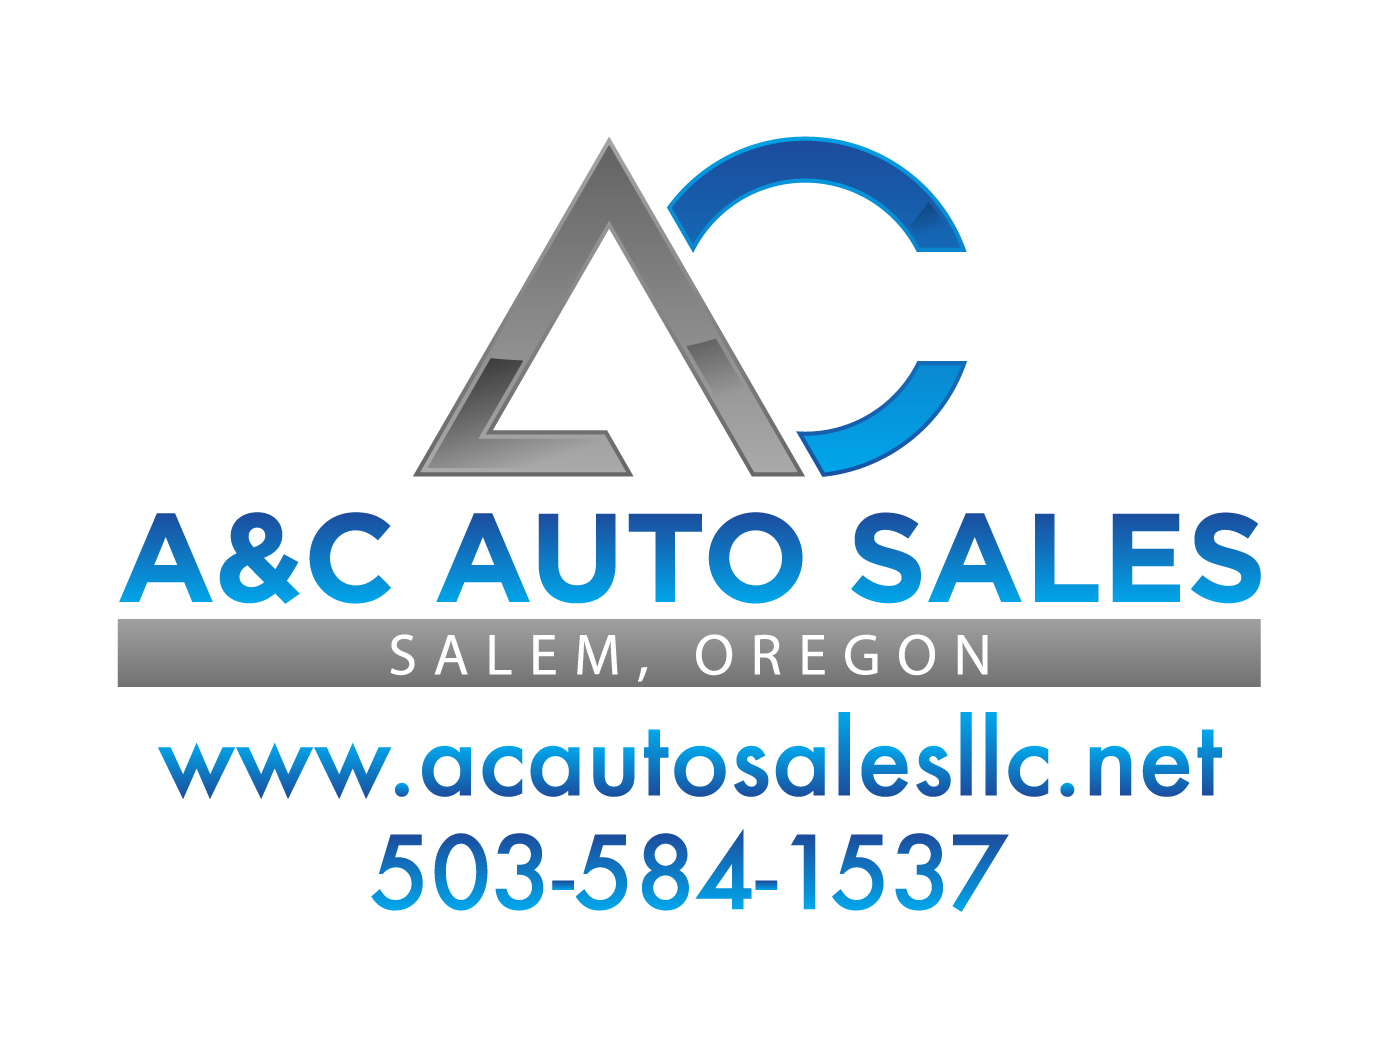 A and C Auto Sales